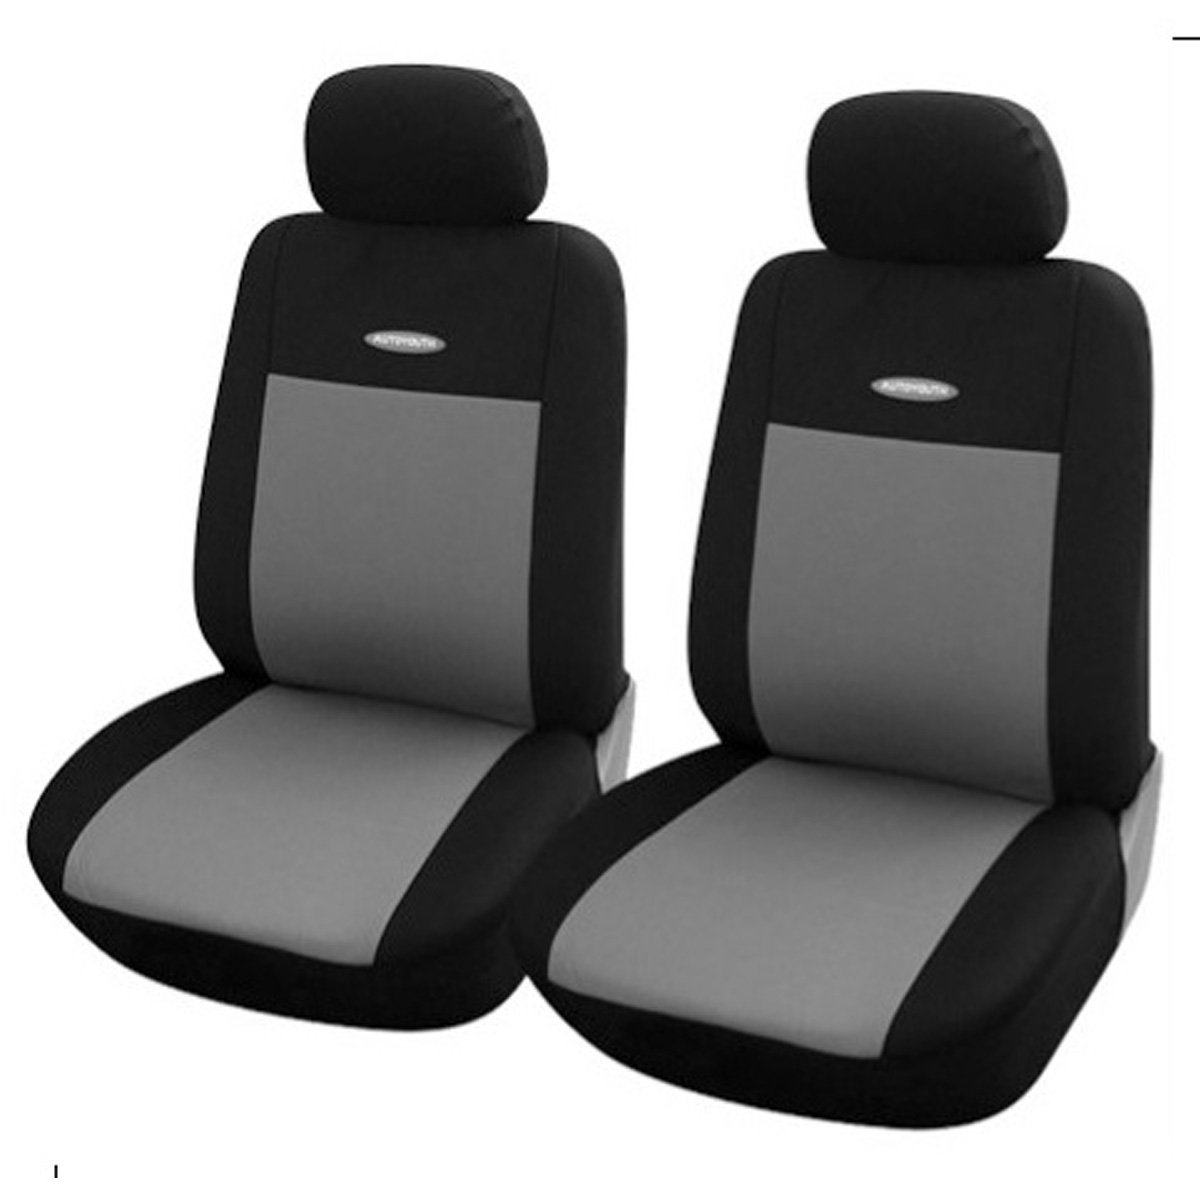 Grey Car Seat Covers Universal Fit Polyester 3MM Composite Sponge Car Styling Lada Car Covers Seat Cover Accessories